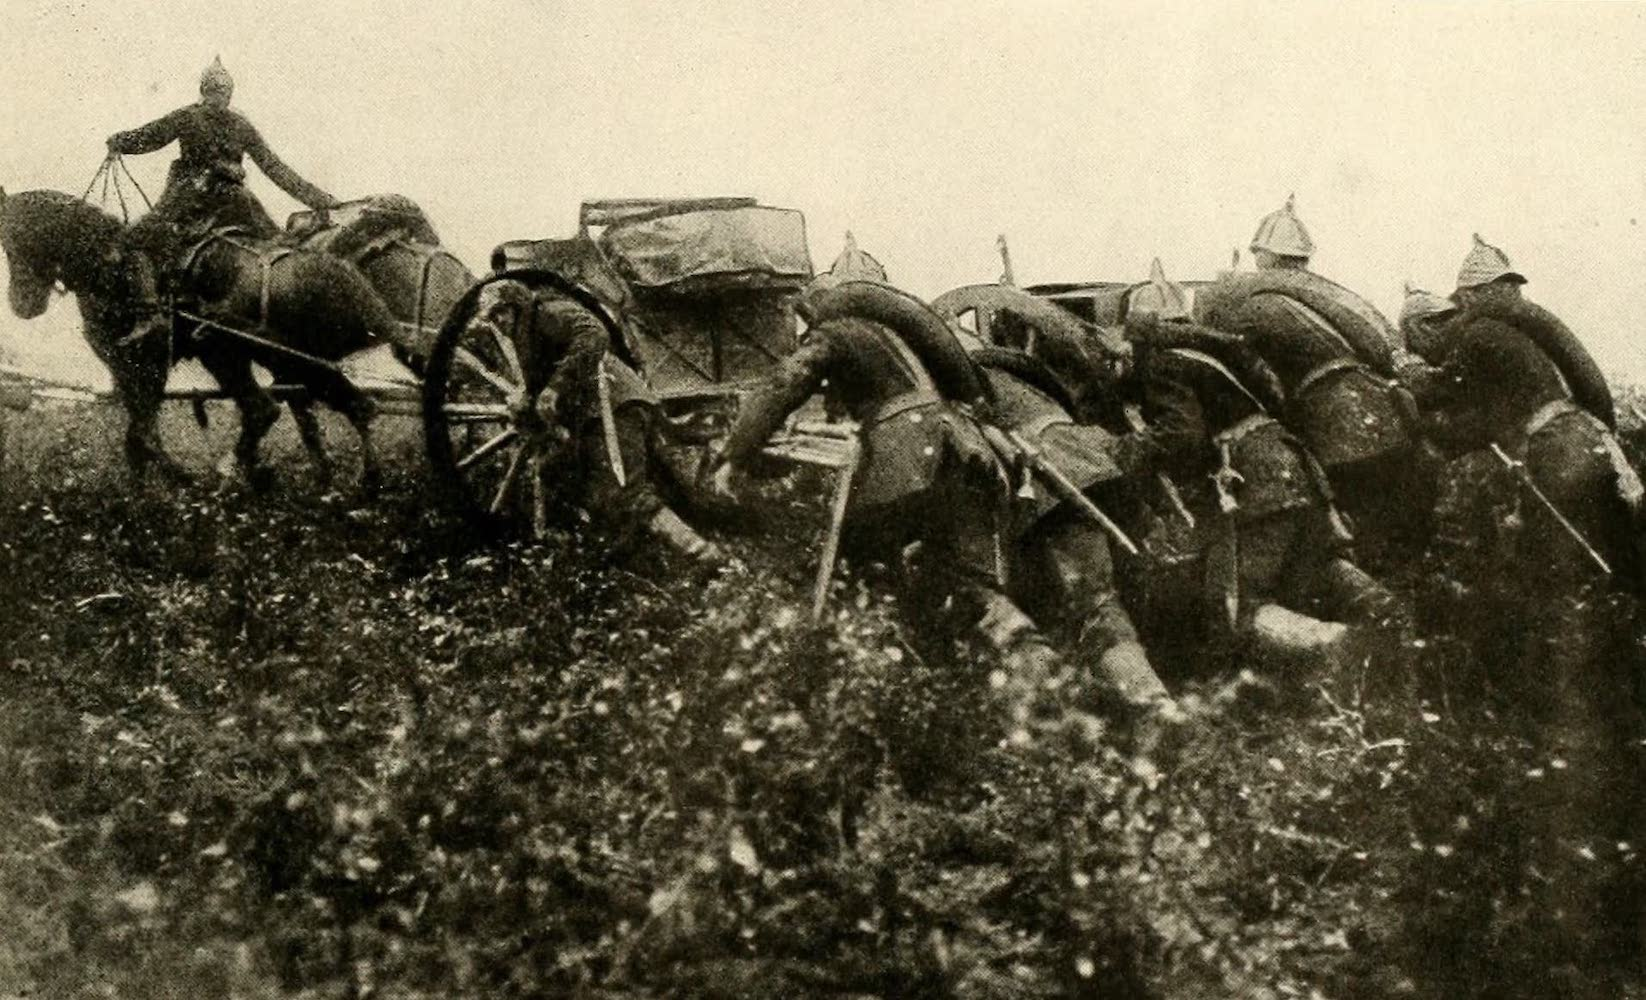 Laird & Lee's World's War Glimpses - German Artillery in the Field (1914)